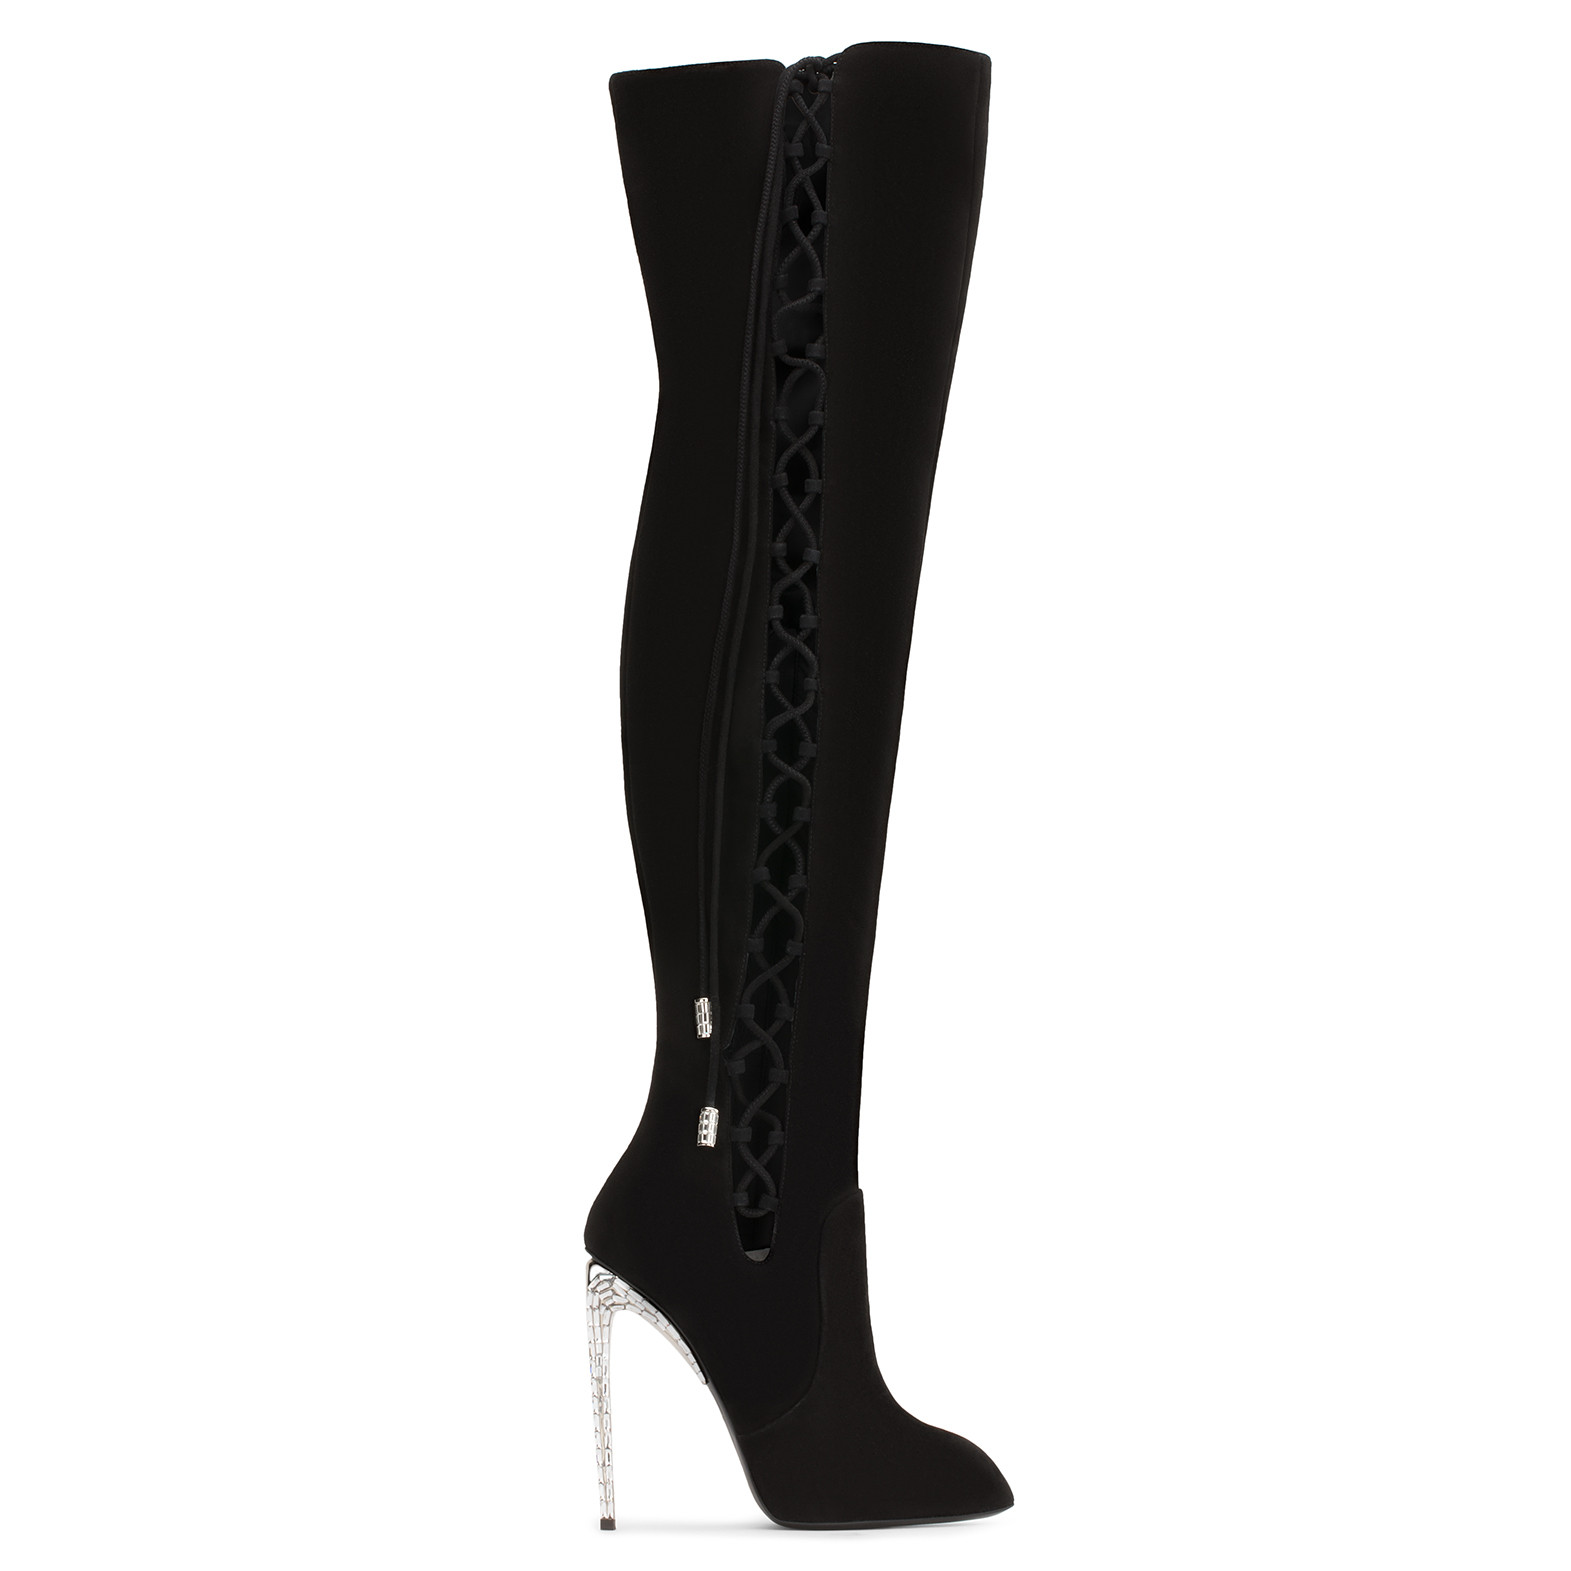 GIUSEPPE ZANOTTI - GIUSEPPE FOR JENNIFER LOPEZ: BLACK SUEDE CUISSARD BOOT WITH CRYSTALS MARISA